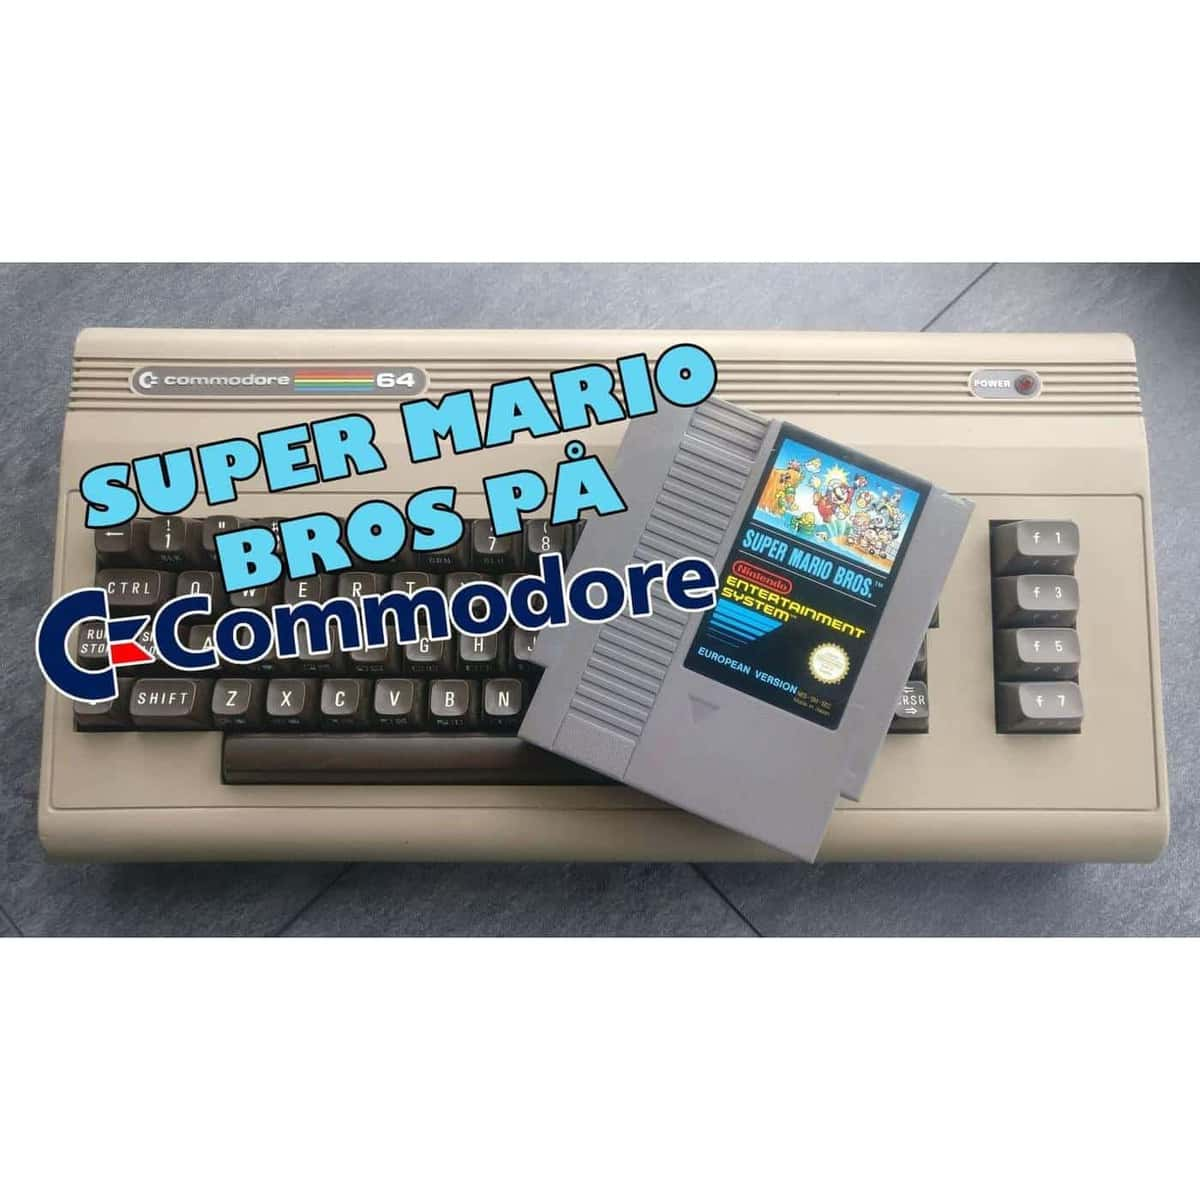 Super Mario Bros på Commodore 64